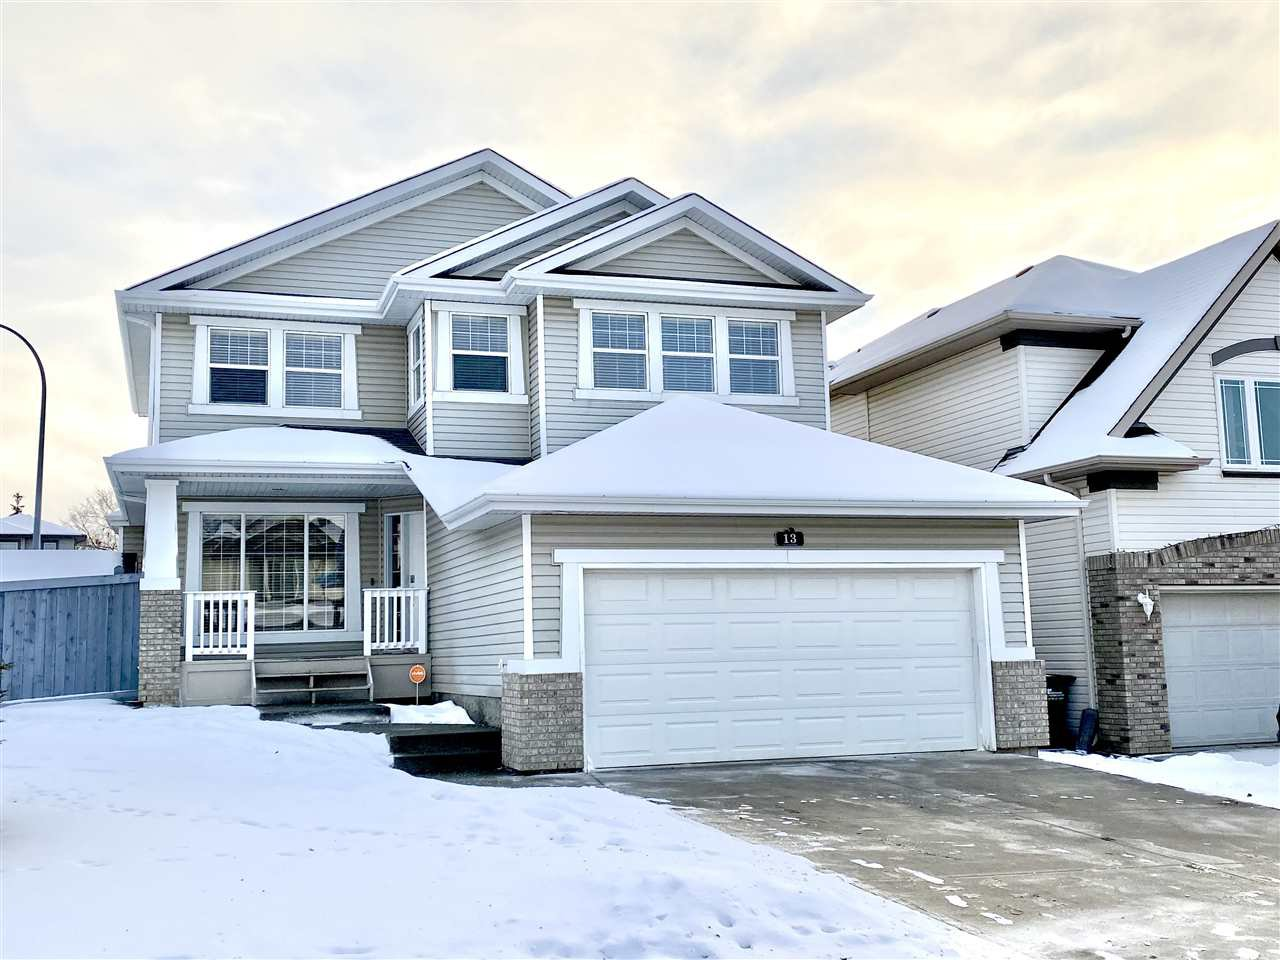 Main Photo: 13 HIGHGROVE Terrace: Sherwood Park House for sale : MLS®# E4184200